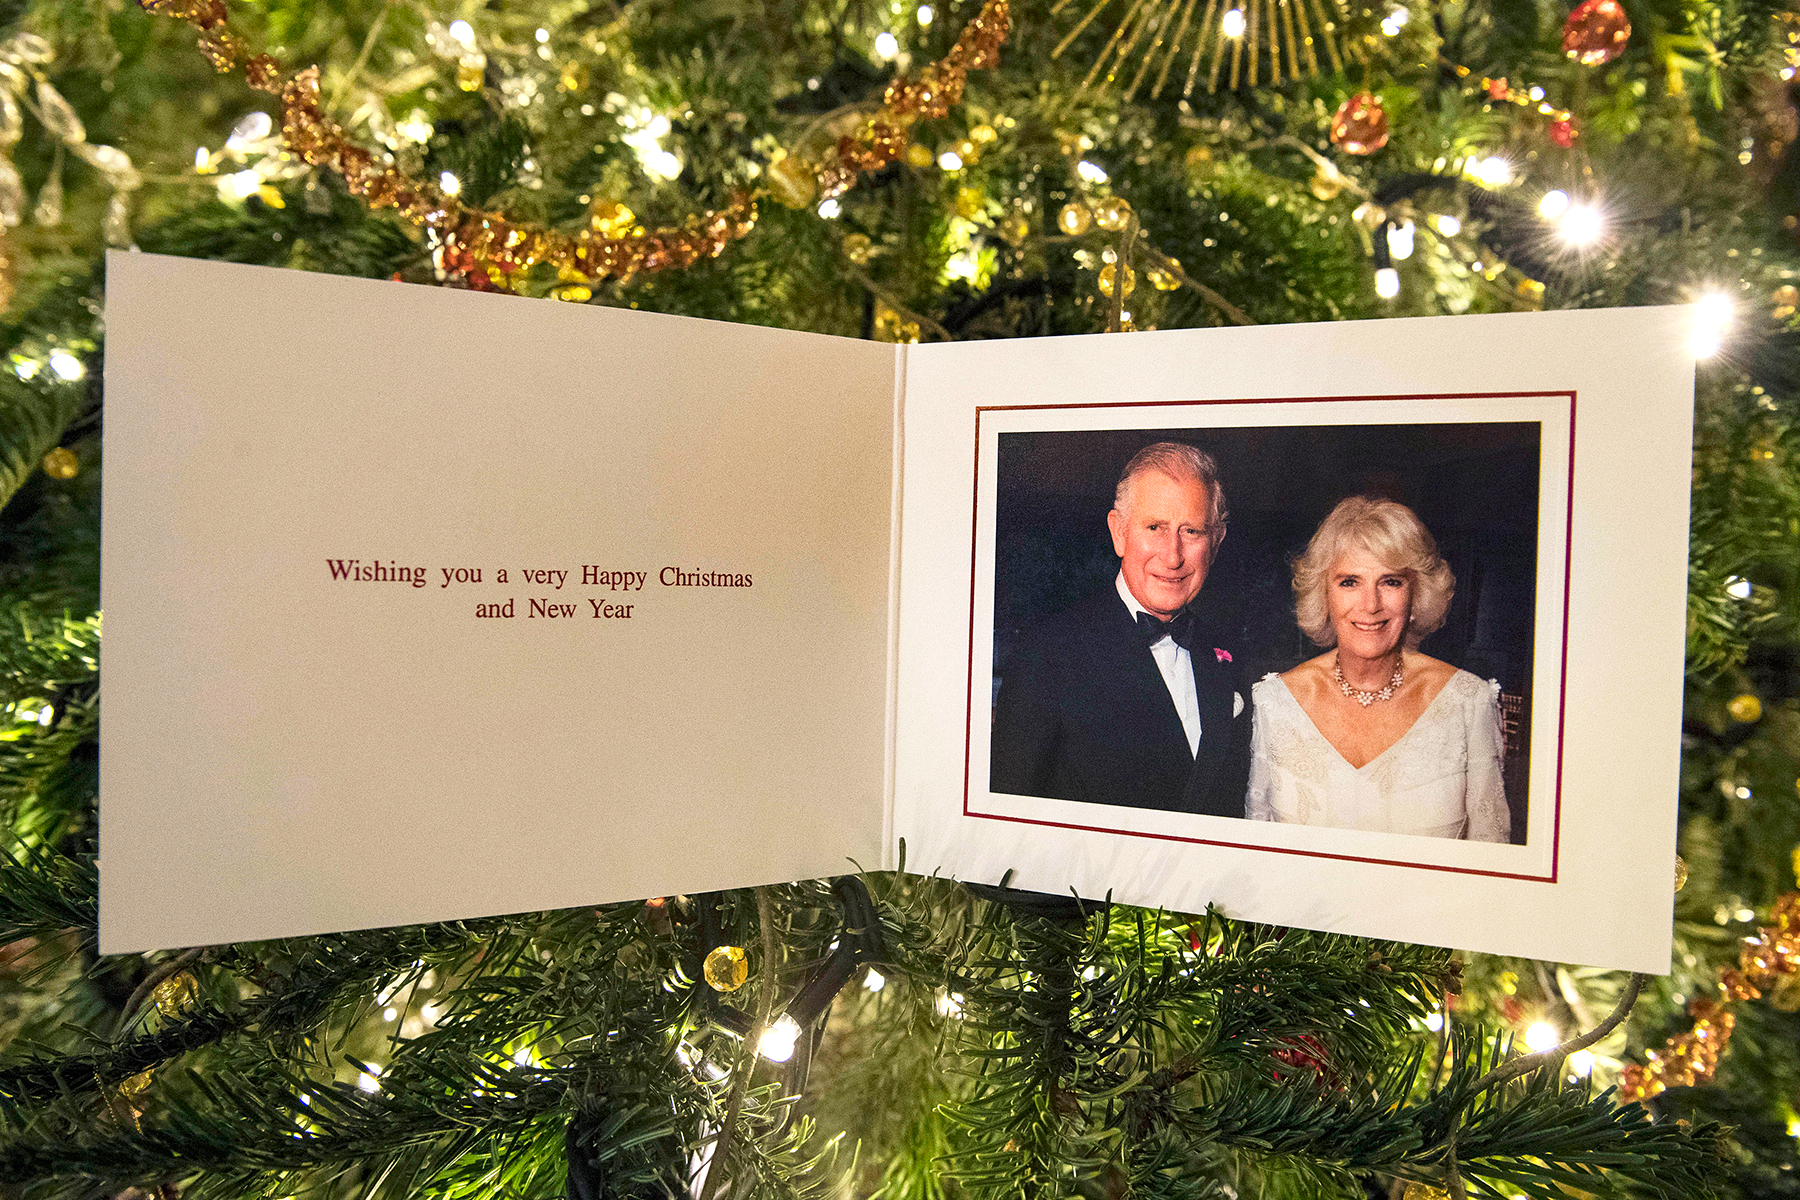 Prince Charles Prince of Wales and Camilla Duchess of Cornwall's 2017 Christmas card